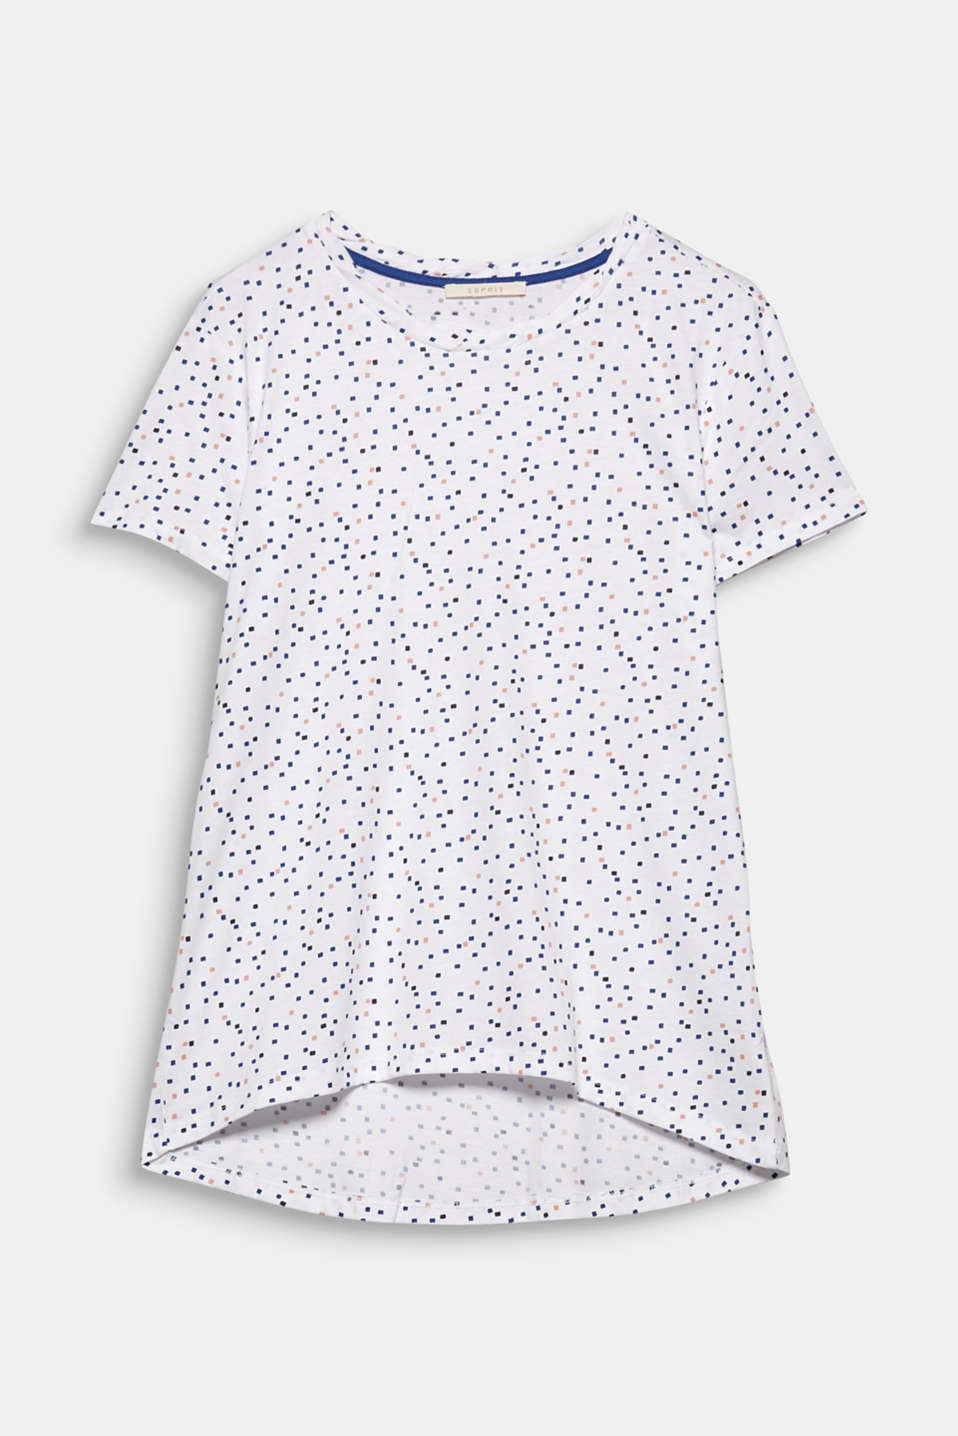 Thanks to the casual silhouette and cool minimal prints, this T-shirt is a fashionable basic for your look.